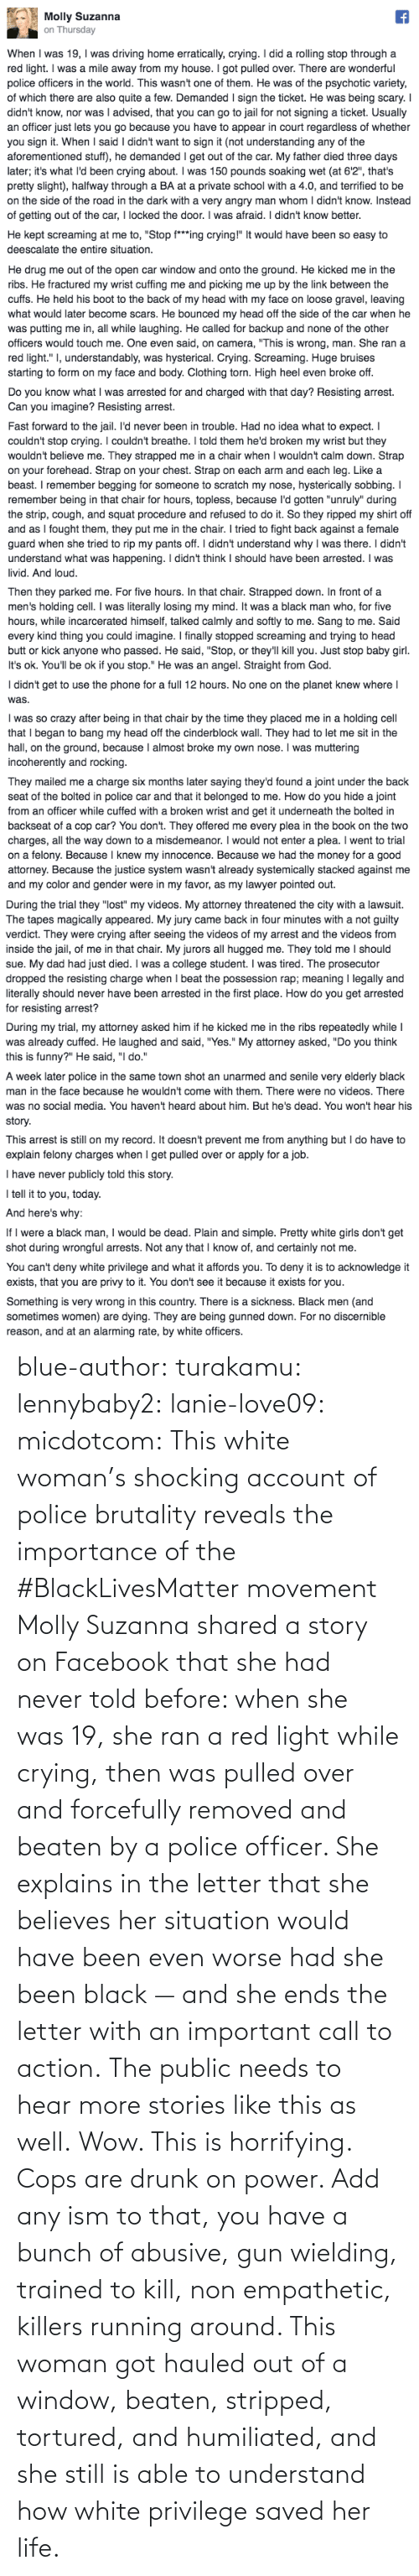 story: blue-author: turakamu:  lennybaby2:  lanie-love09:  micdotcom:  This white woman's shocking account of police brutality reveals the importance of the #BlackLivesMatter movement Molly Suzanna shared a story on Facebook that she had never told before: when she was 19, she ran a red light while crying, then was pulled over and forcefully removed and beaten by a police officer. She explains in the letter that she believes her situation would have been even worse had she been black — and she ends the letter with an important call to action.  The public needs to hear more stories like this as well.  Wow. This is horrifying.  Cops are drunk on power. Add any ism to that, you have a bunch of abusive, gun wielding, trained to kill, non empathetic, killers running around.    This woman got hauled out of a window, beaten, stripped, tortured, and humiliated, and she still is able to understand how white privilege saved her life.